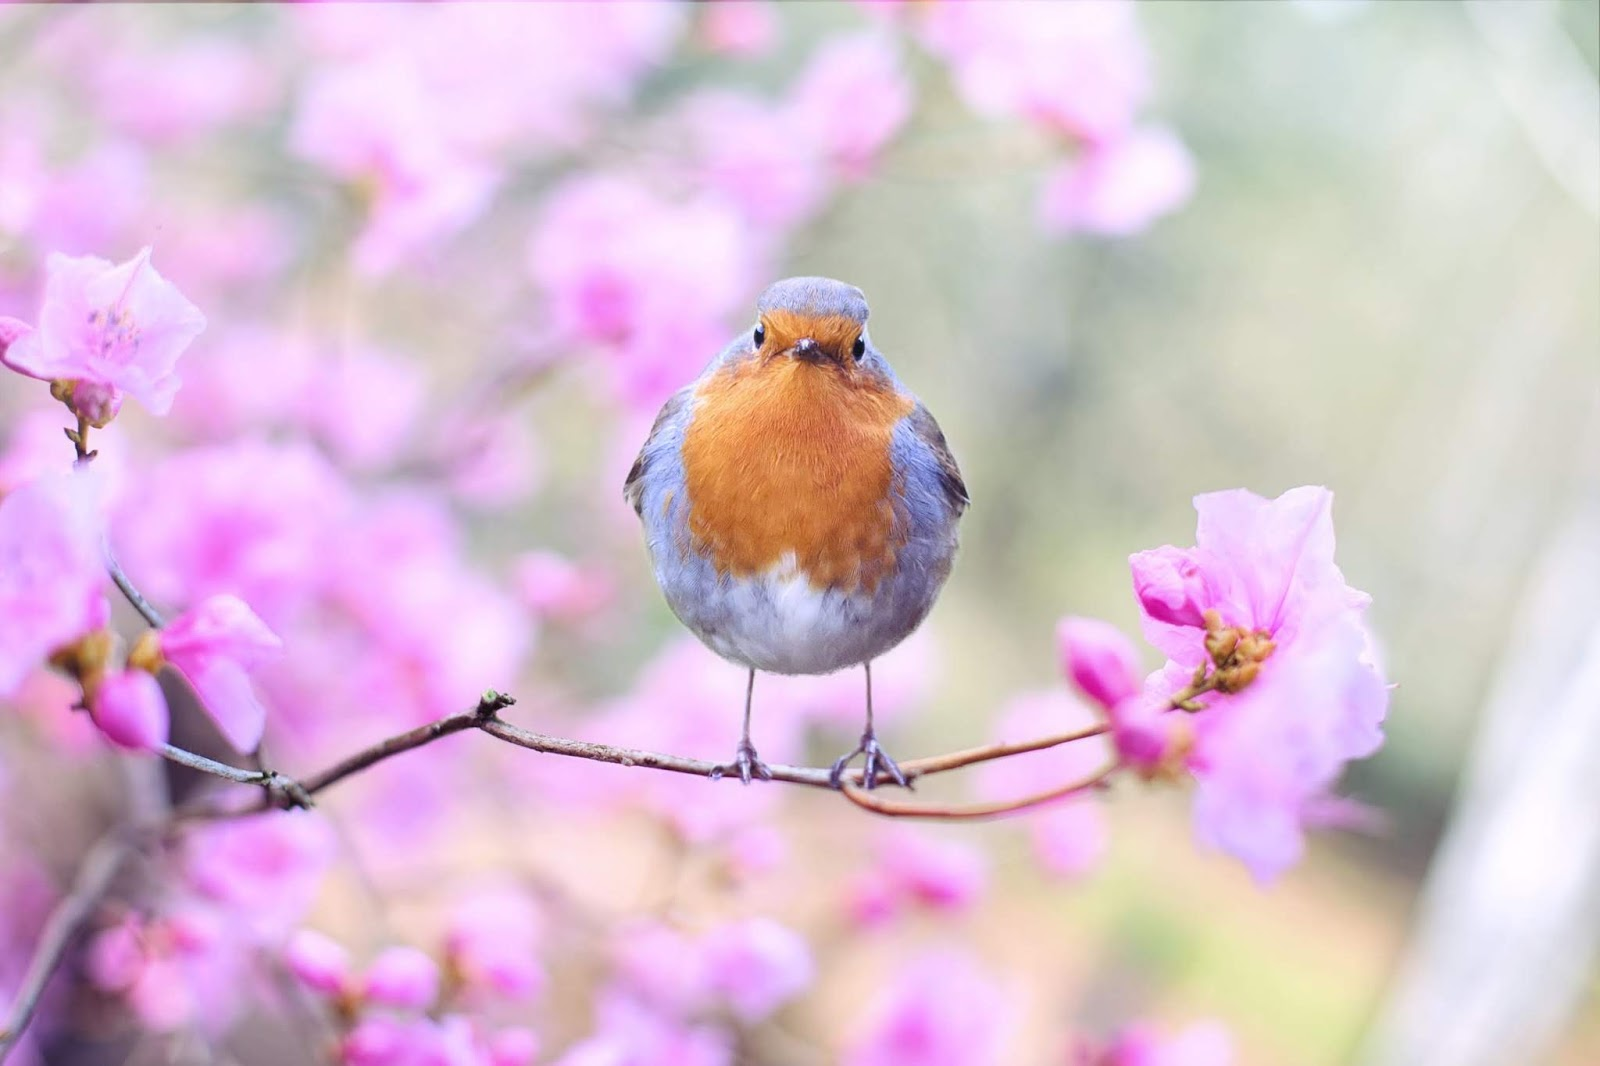 Robin in the springtime on pink blossom. Image: Pexels